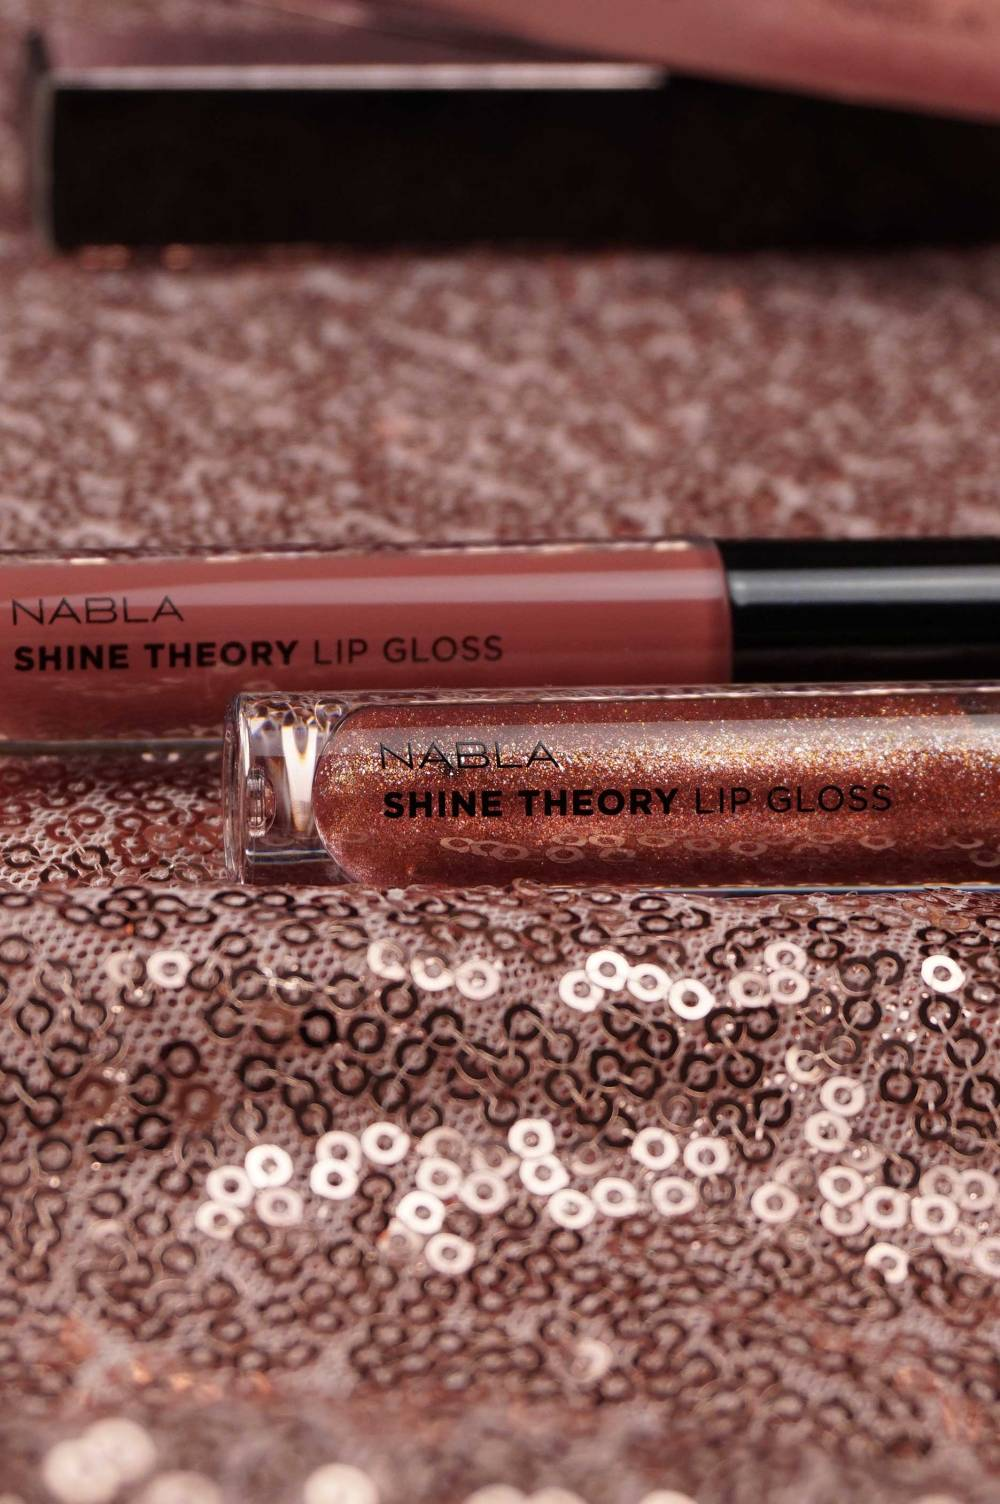 nabla-shine-theory-lip-gloss.jpg